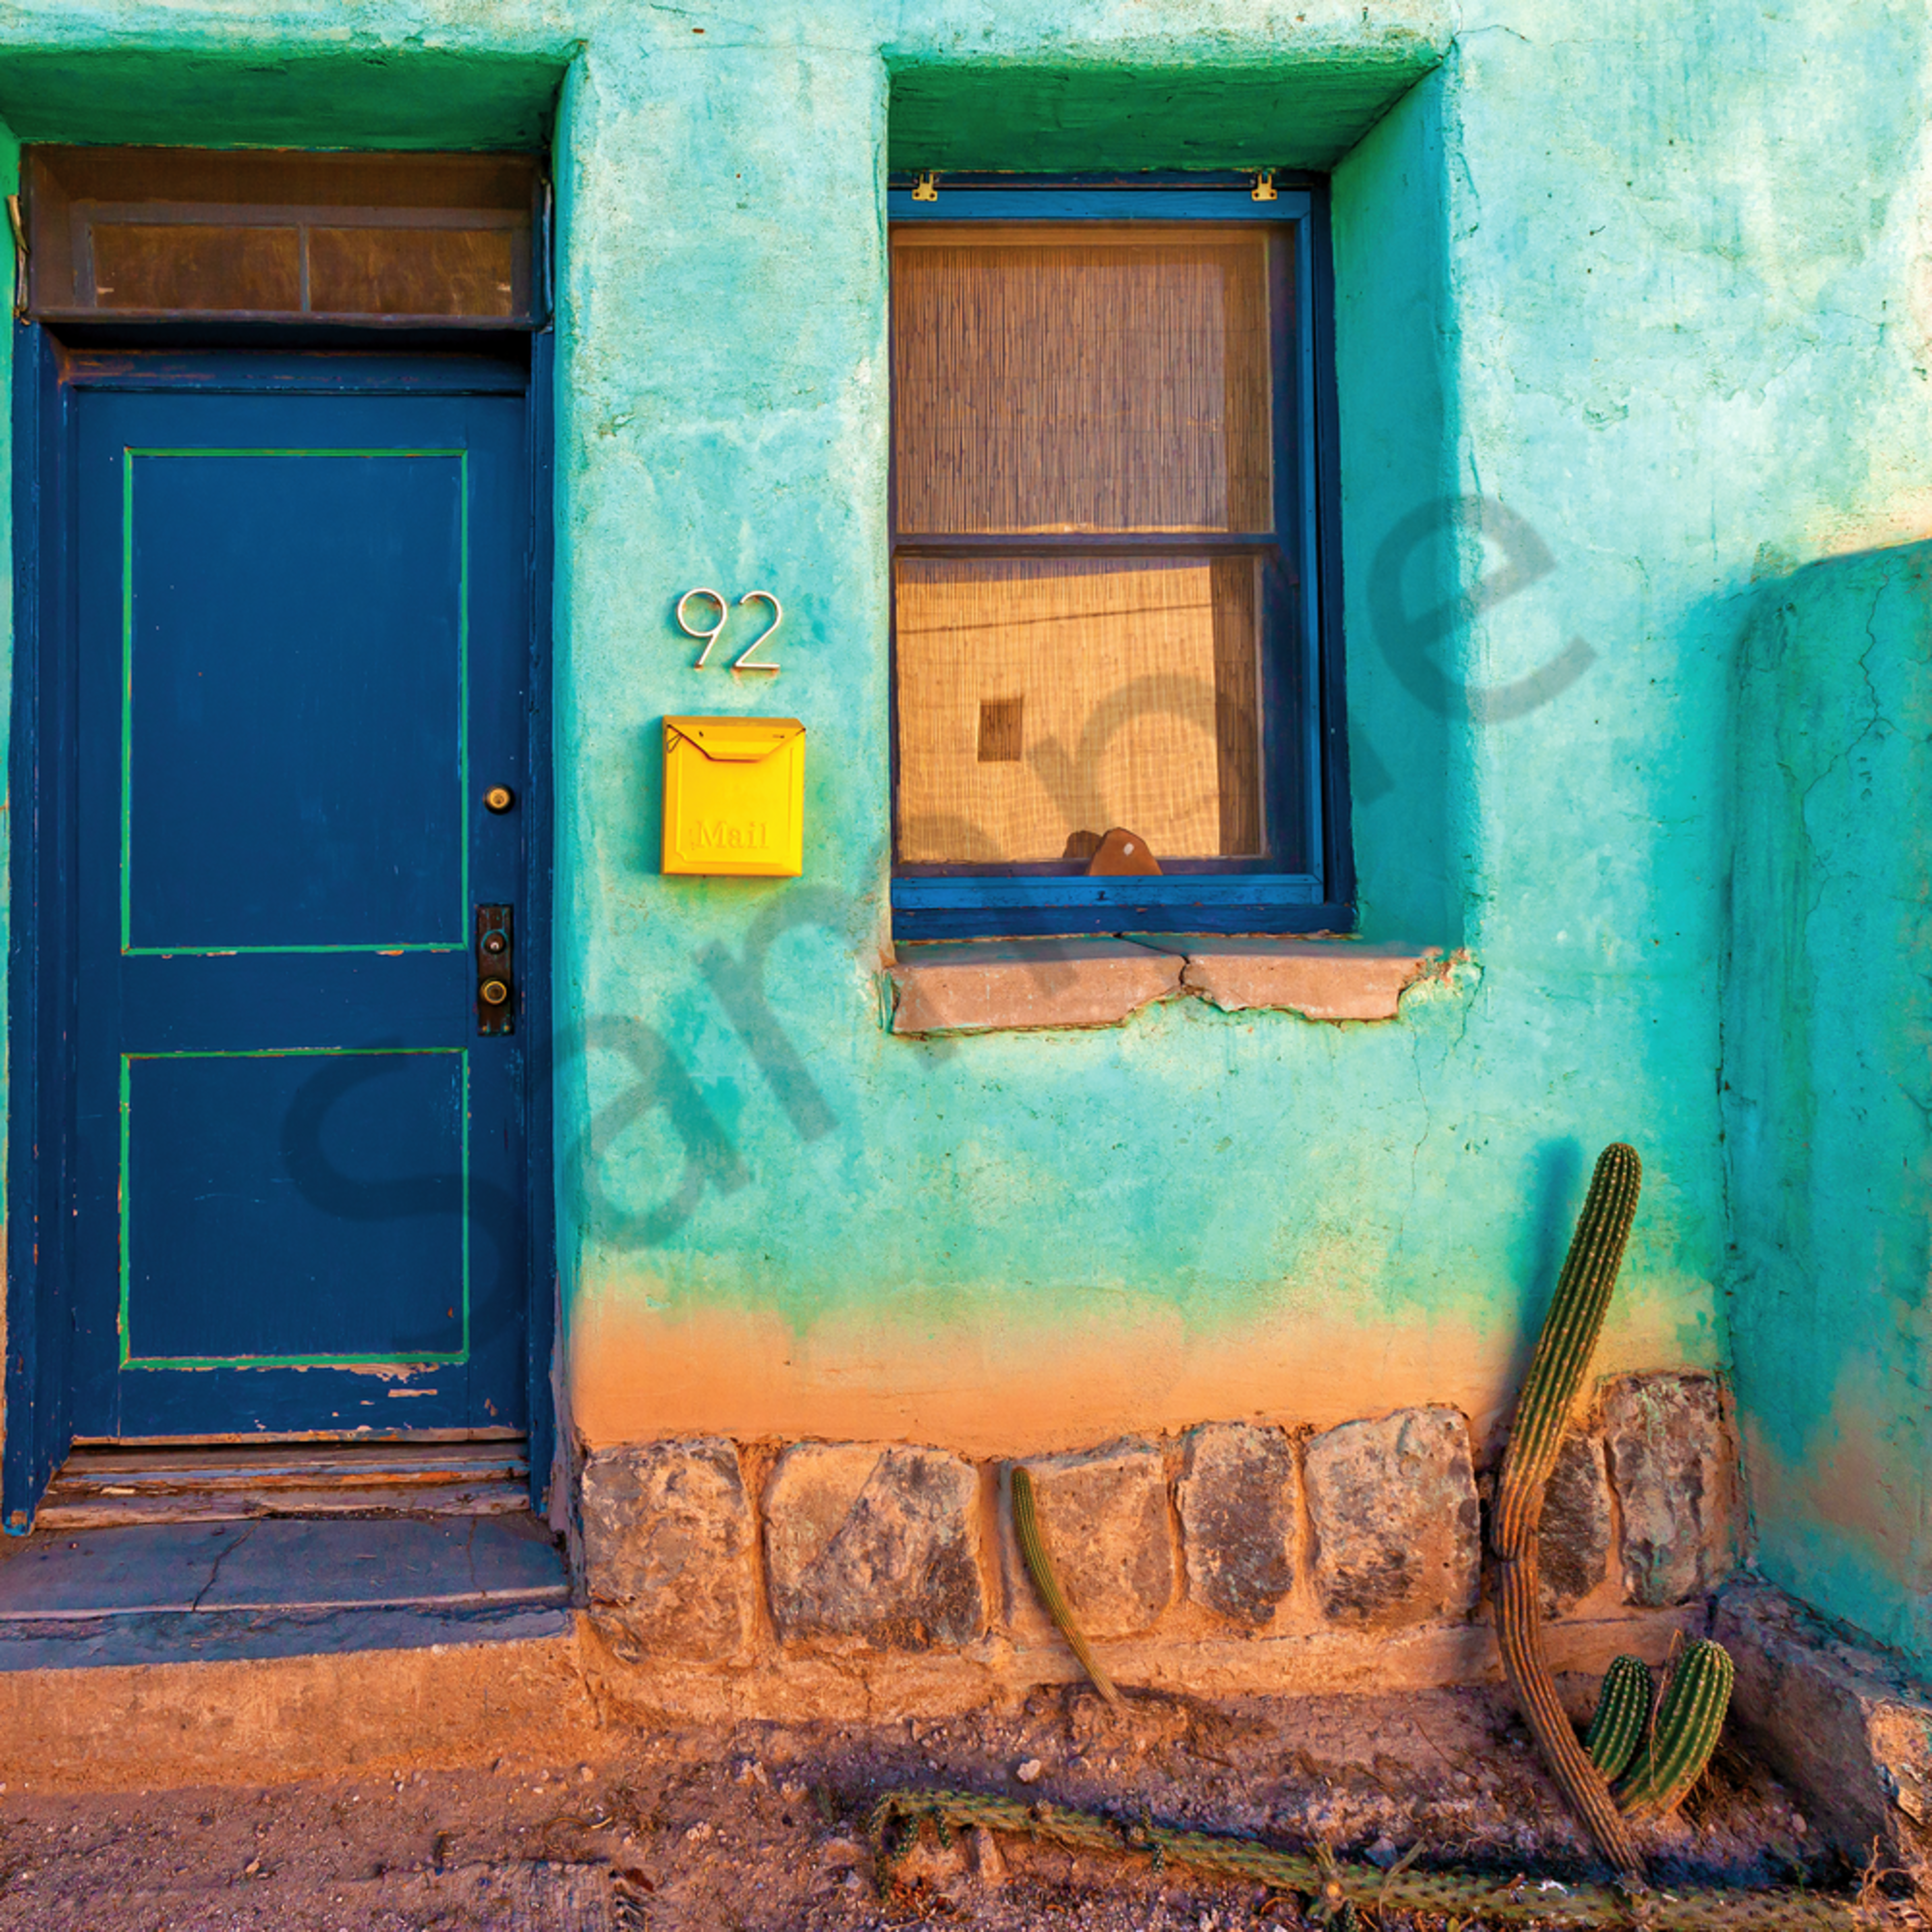 Green wall blue door yellow and mail box tucson arizona pwmbkn